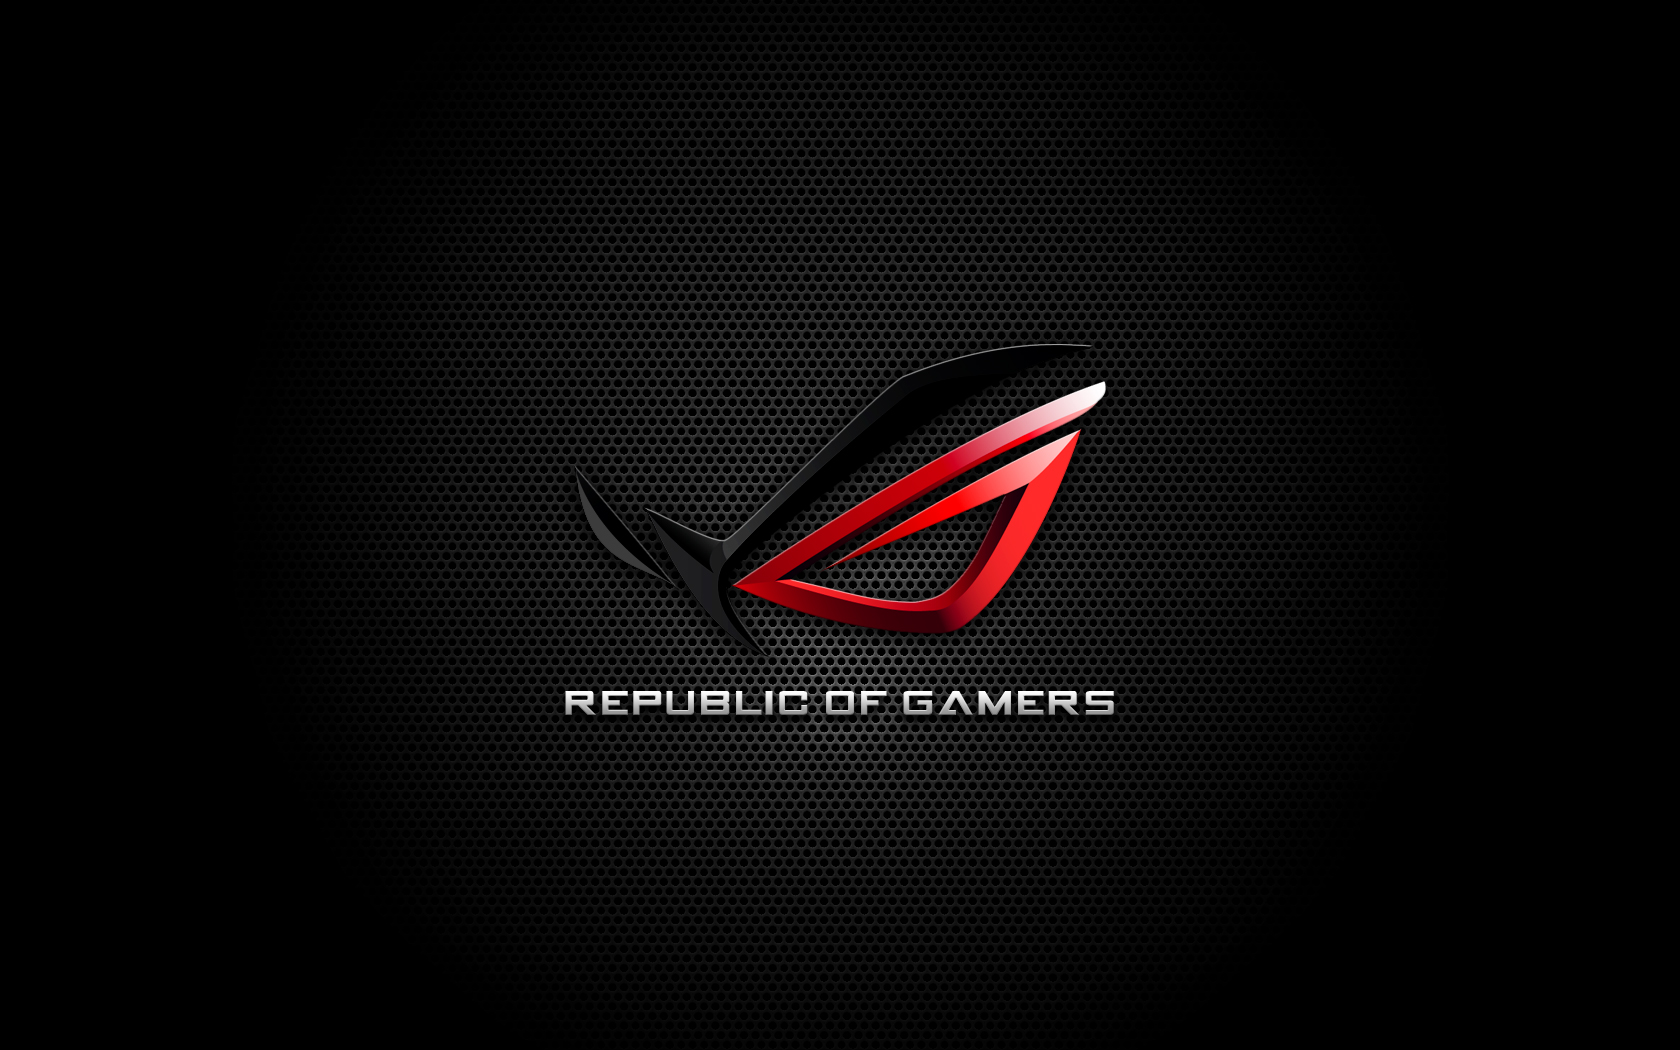 Republic Of Gamers Wallpapers   Taringa 1680x1050